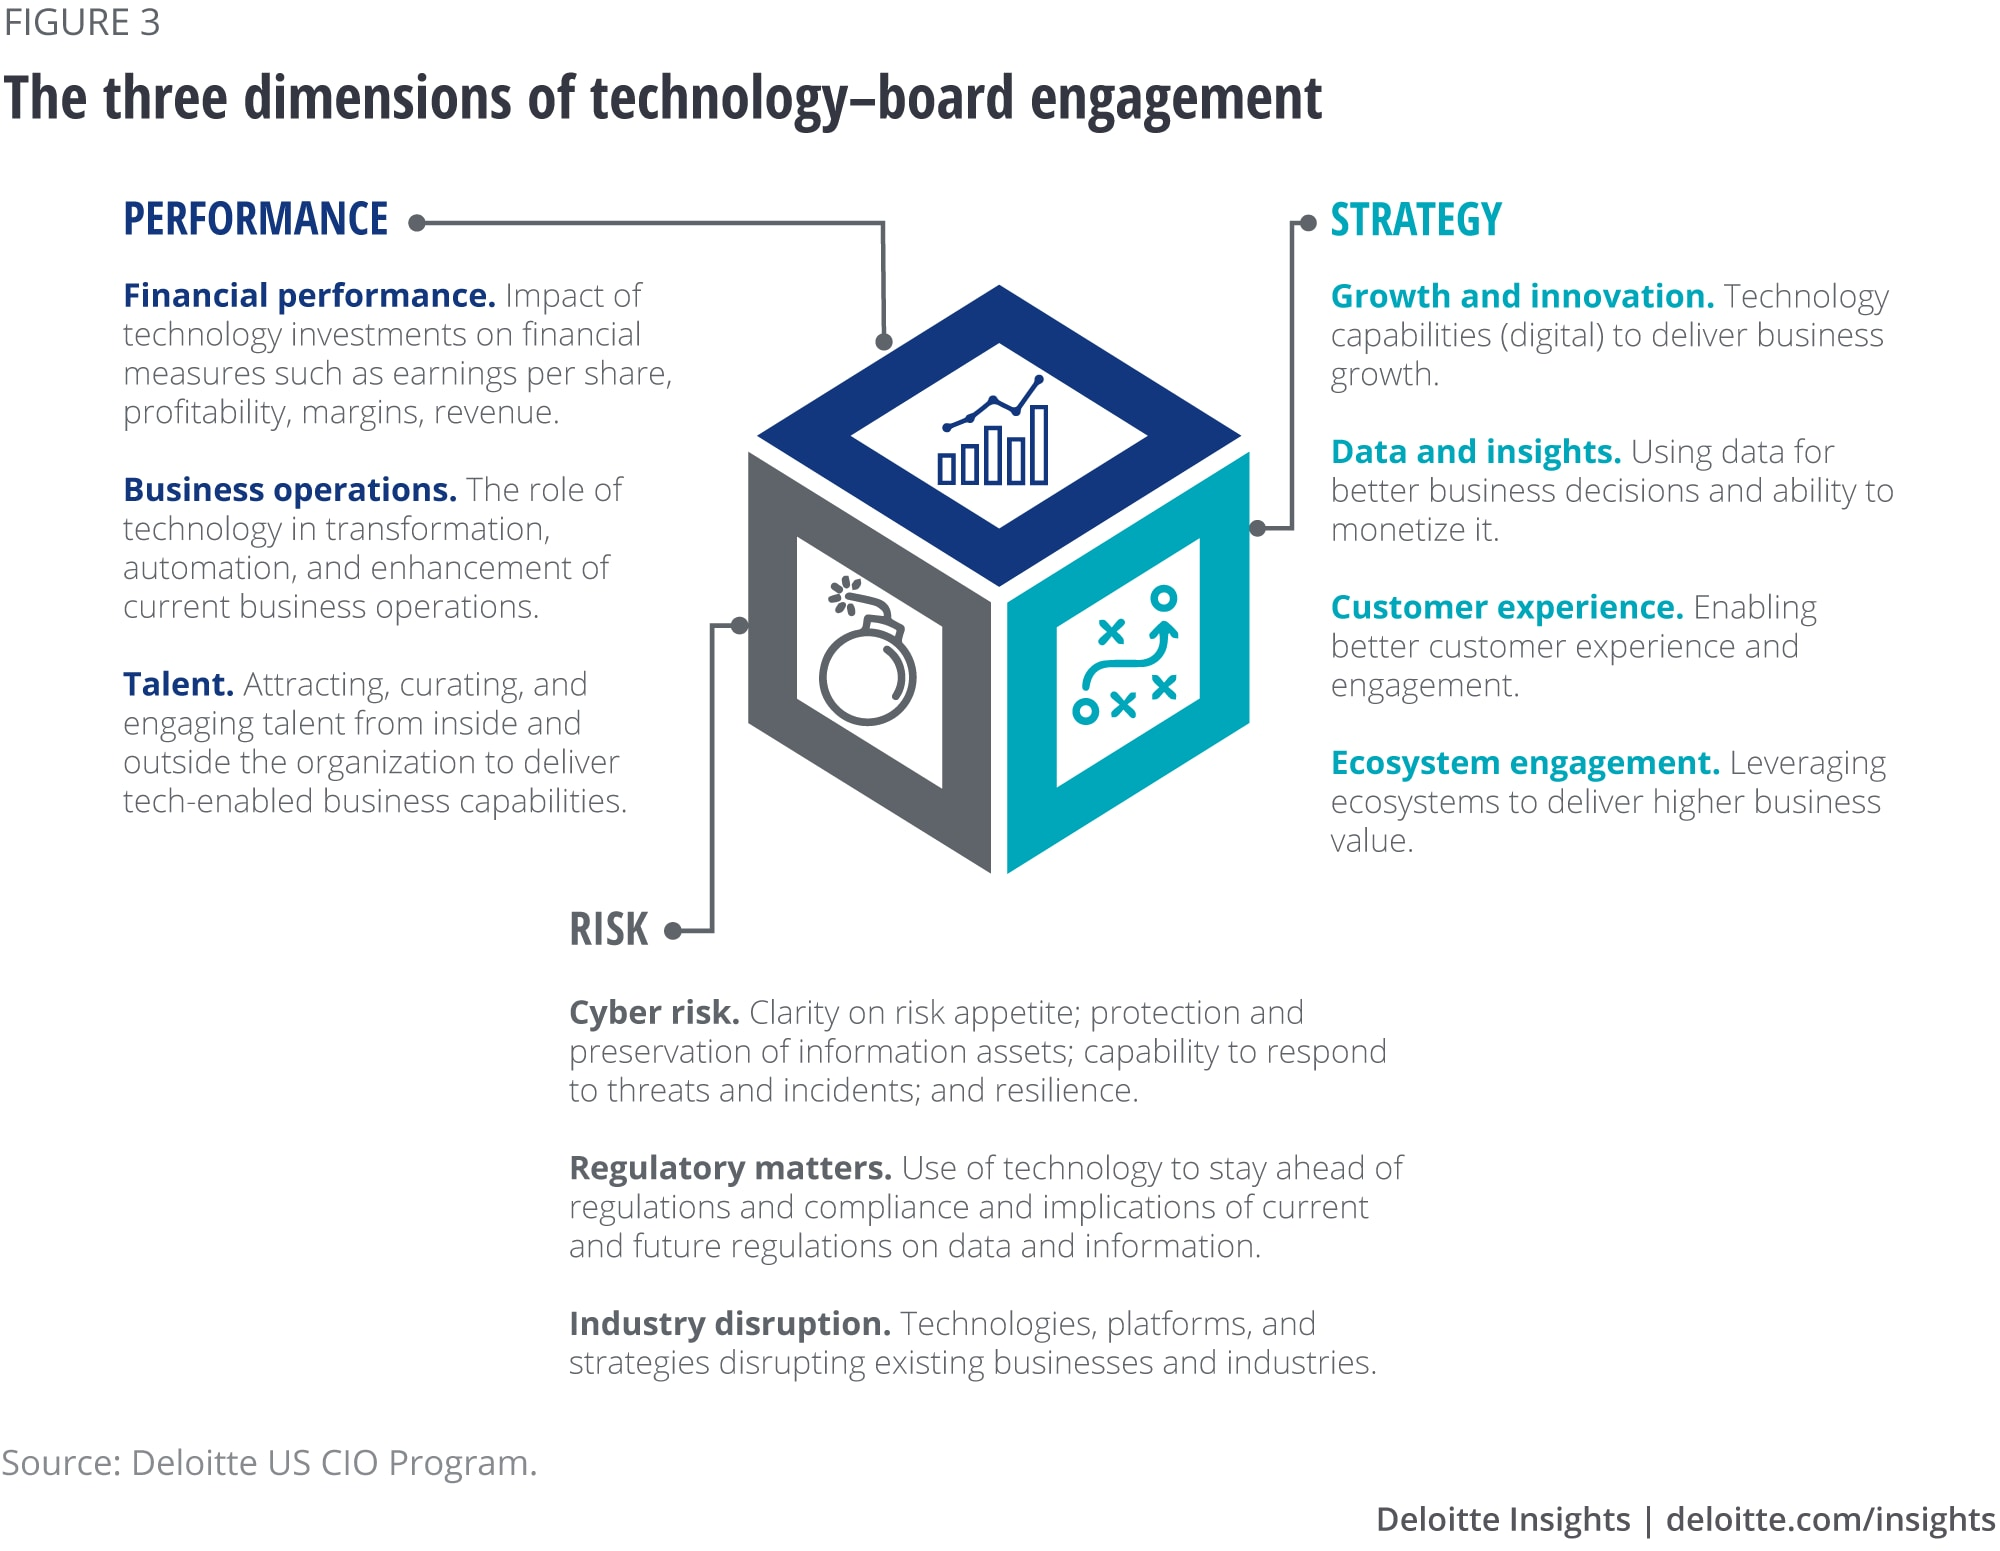 The three dimensions of technology-board engagement